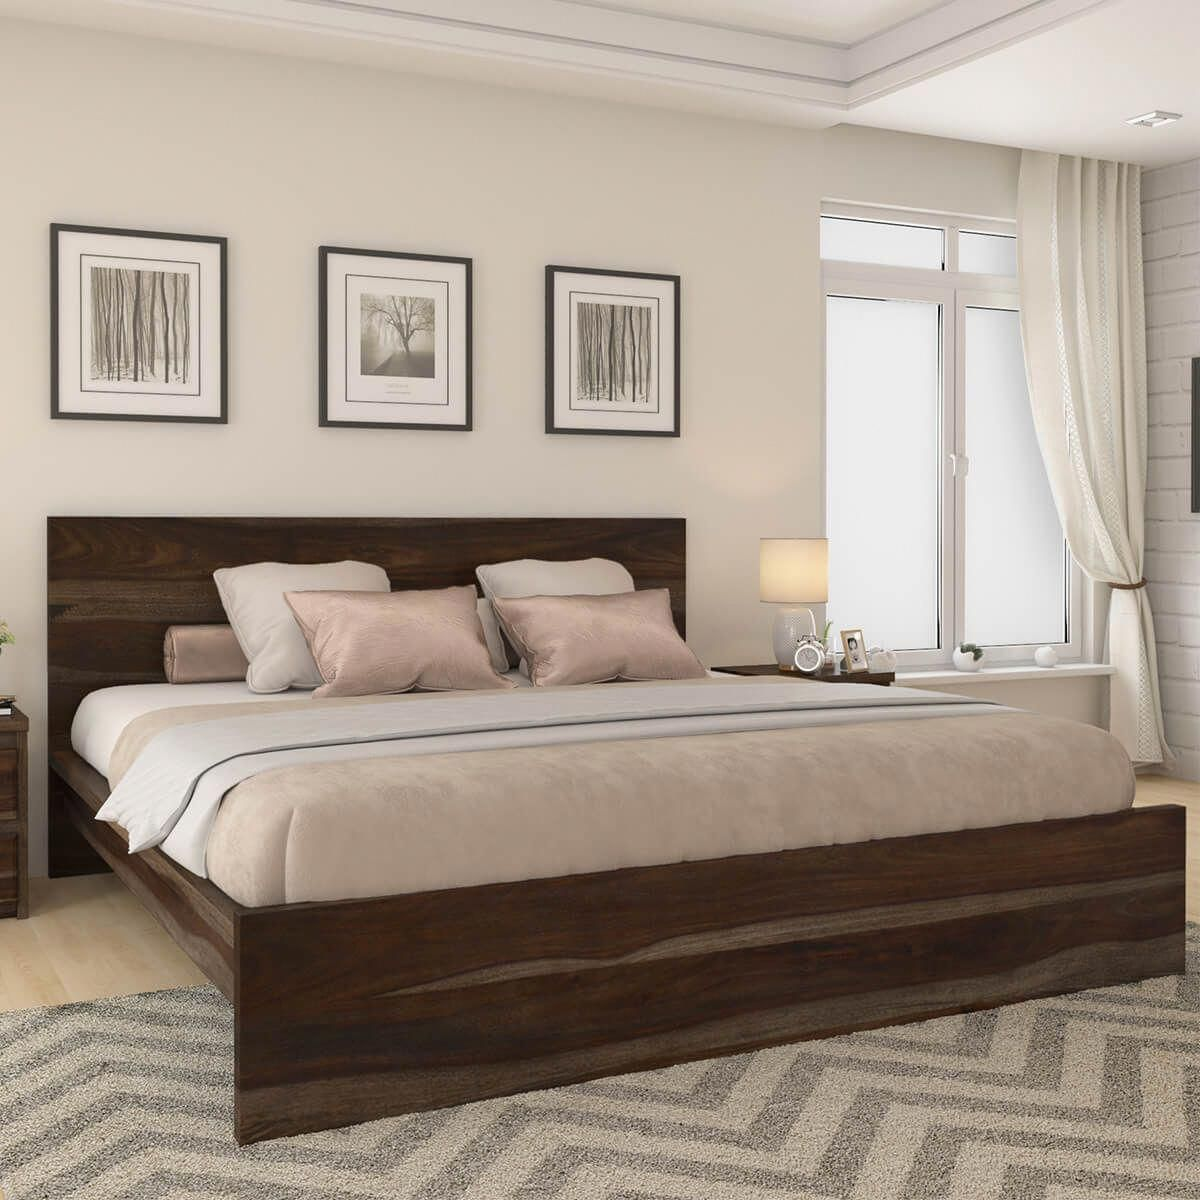 8 Stylish Nightstands In 2020 Bedroom Wall Decor Above Bed